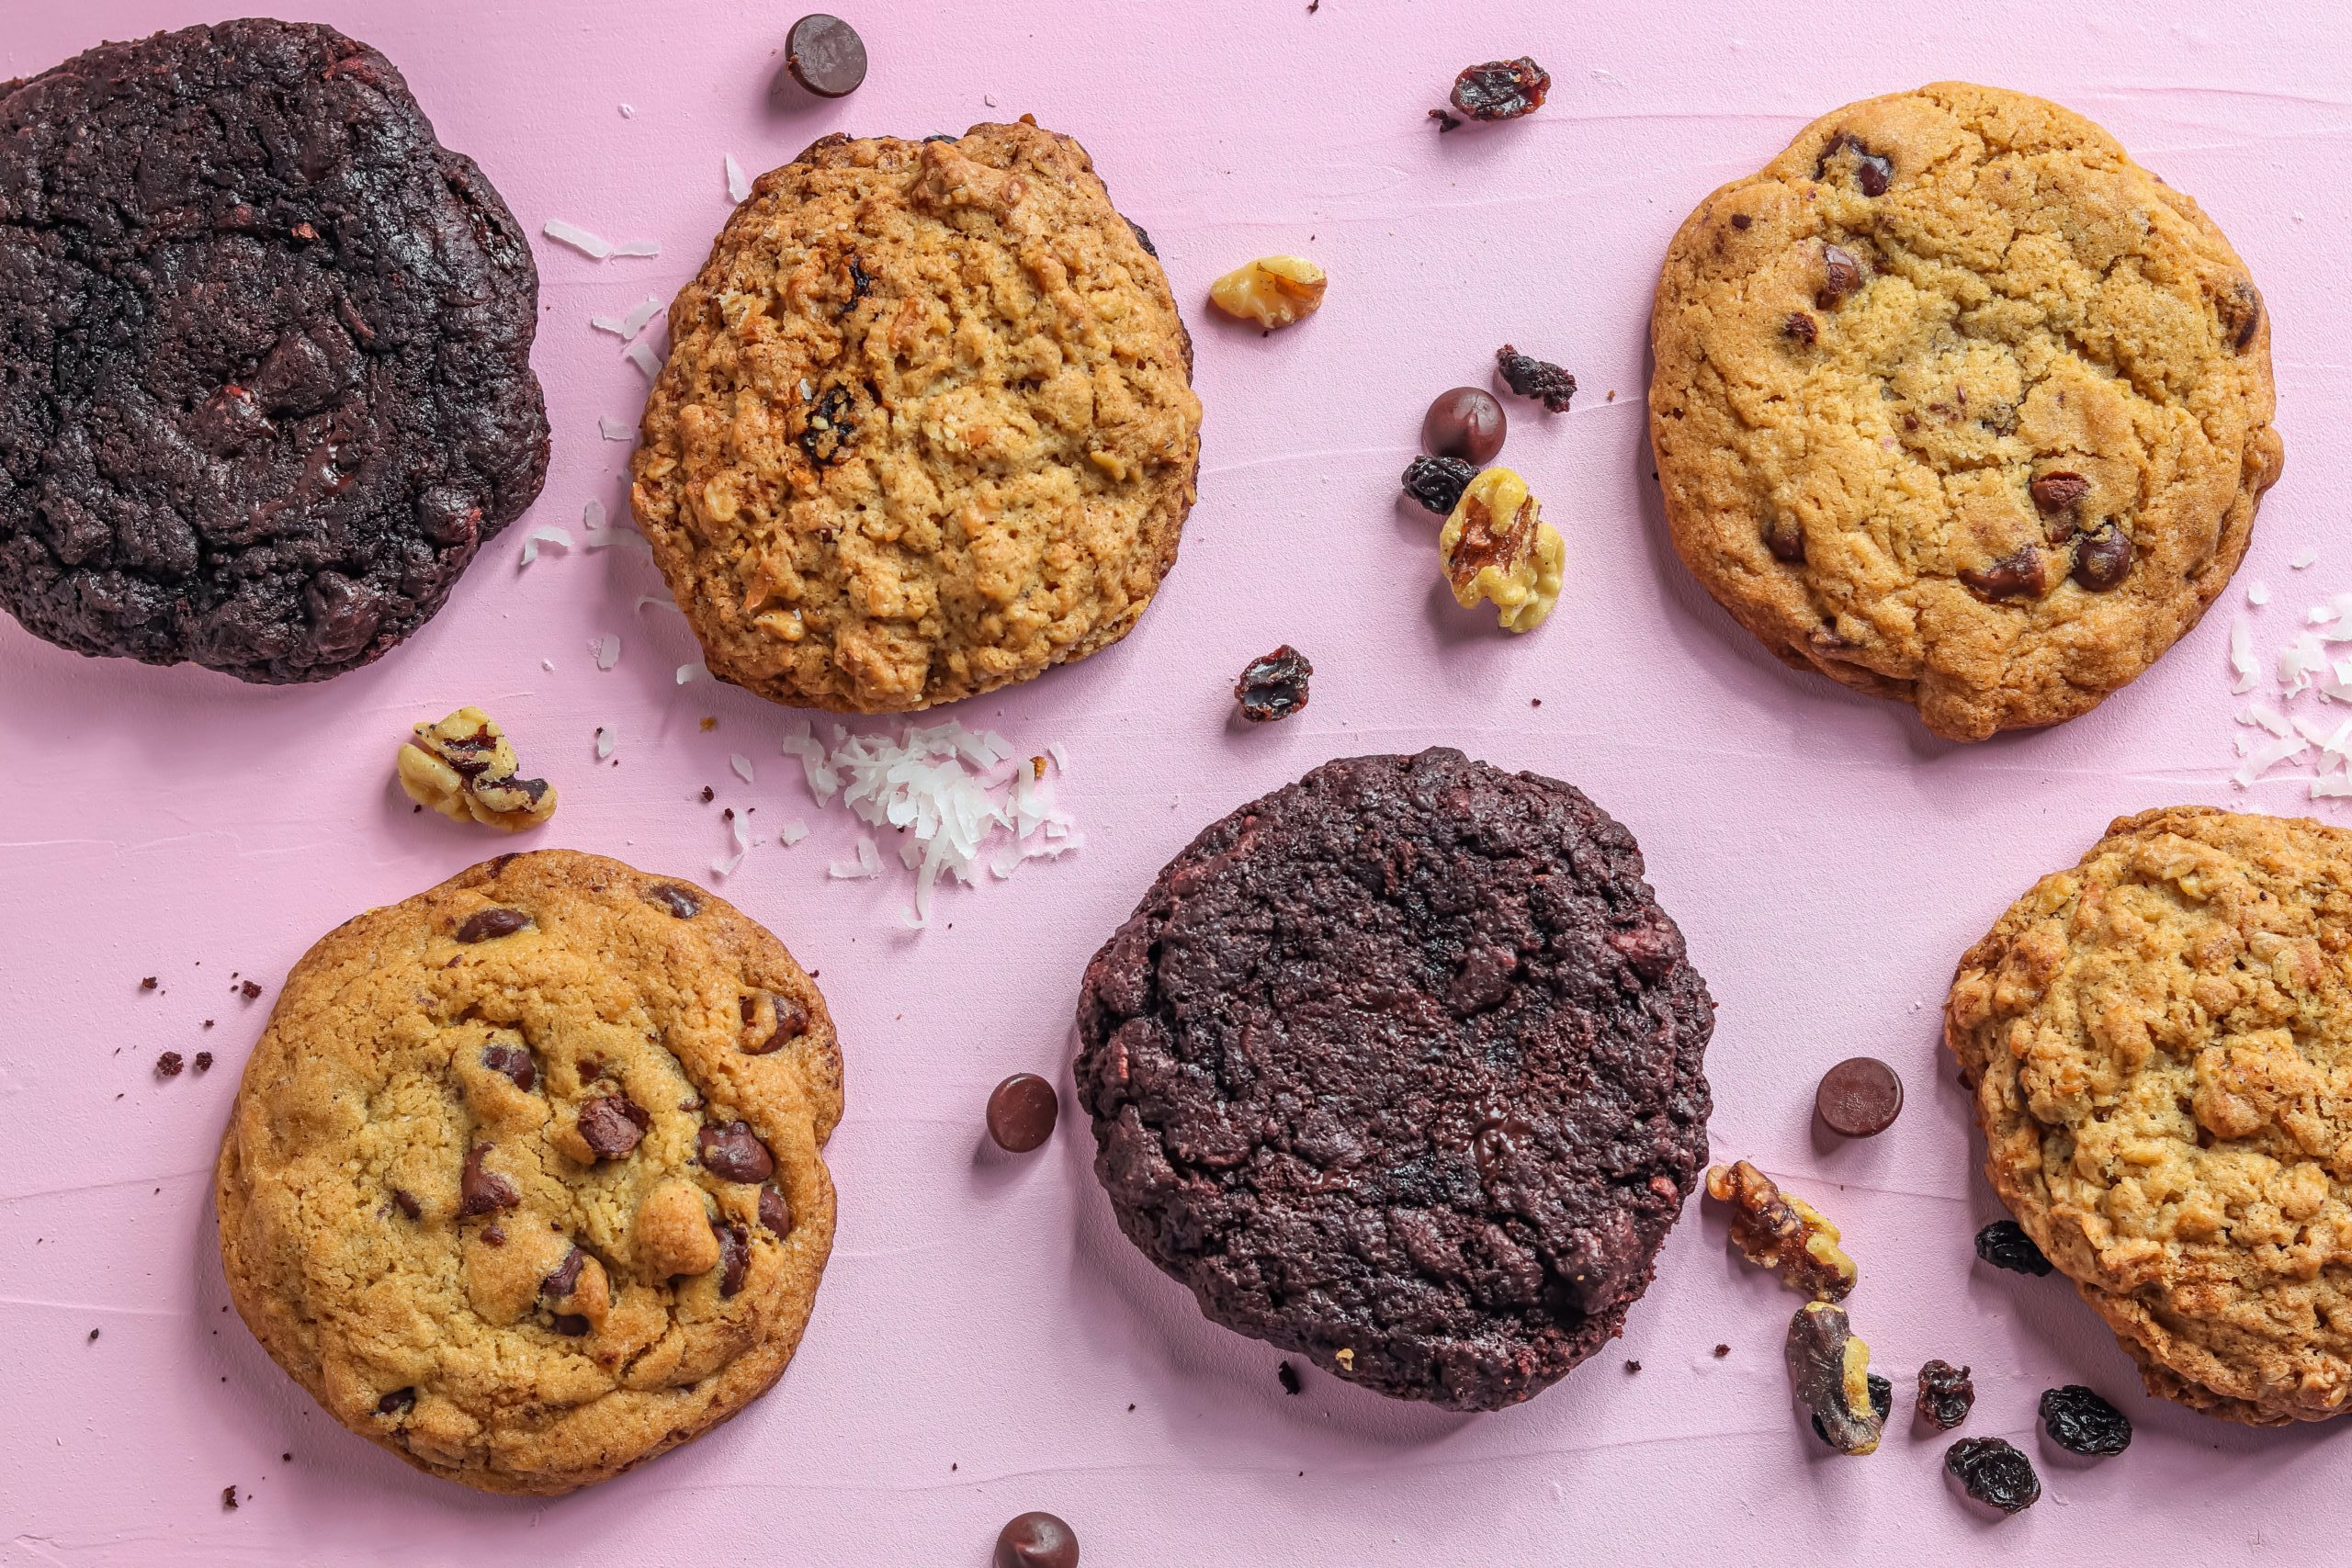 Crumbl cookies really blew up this year, and they have TikTok to thank for that. Learn more about the Crumbl cookies TikTok strategy here.